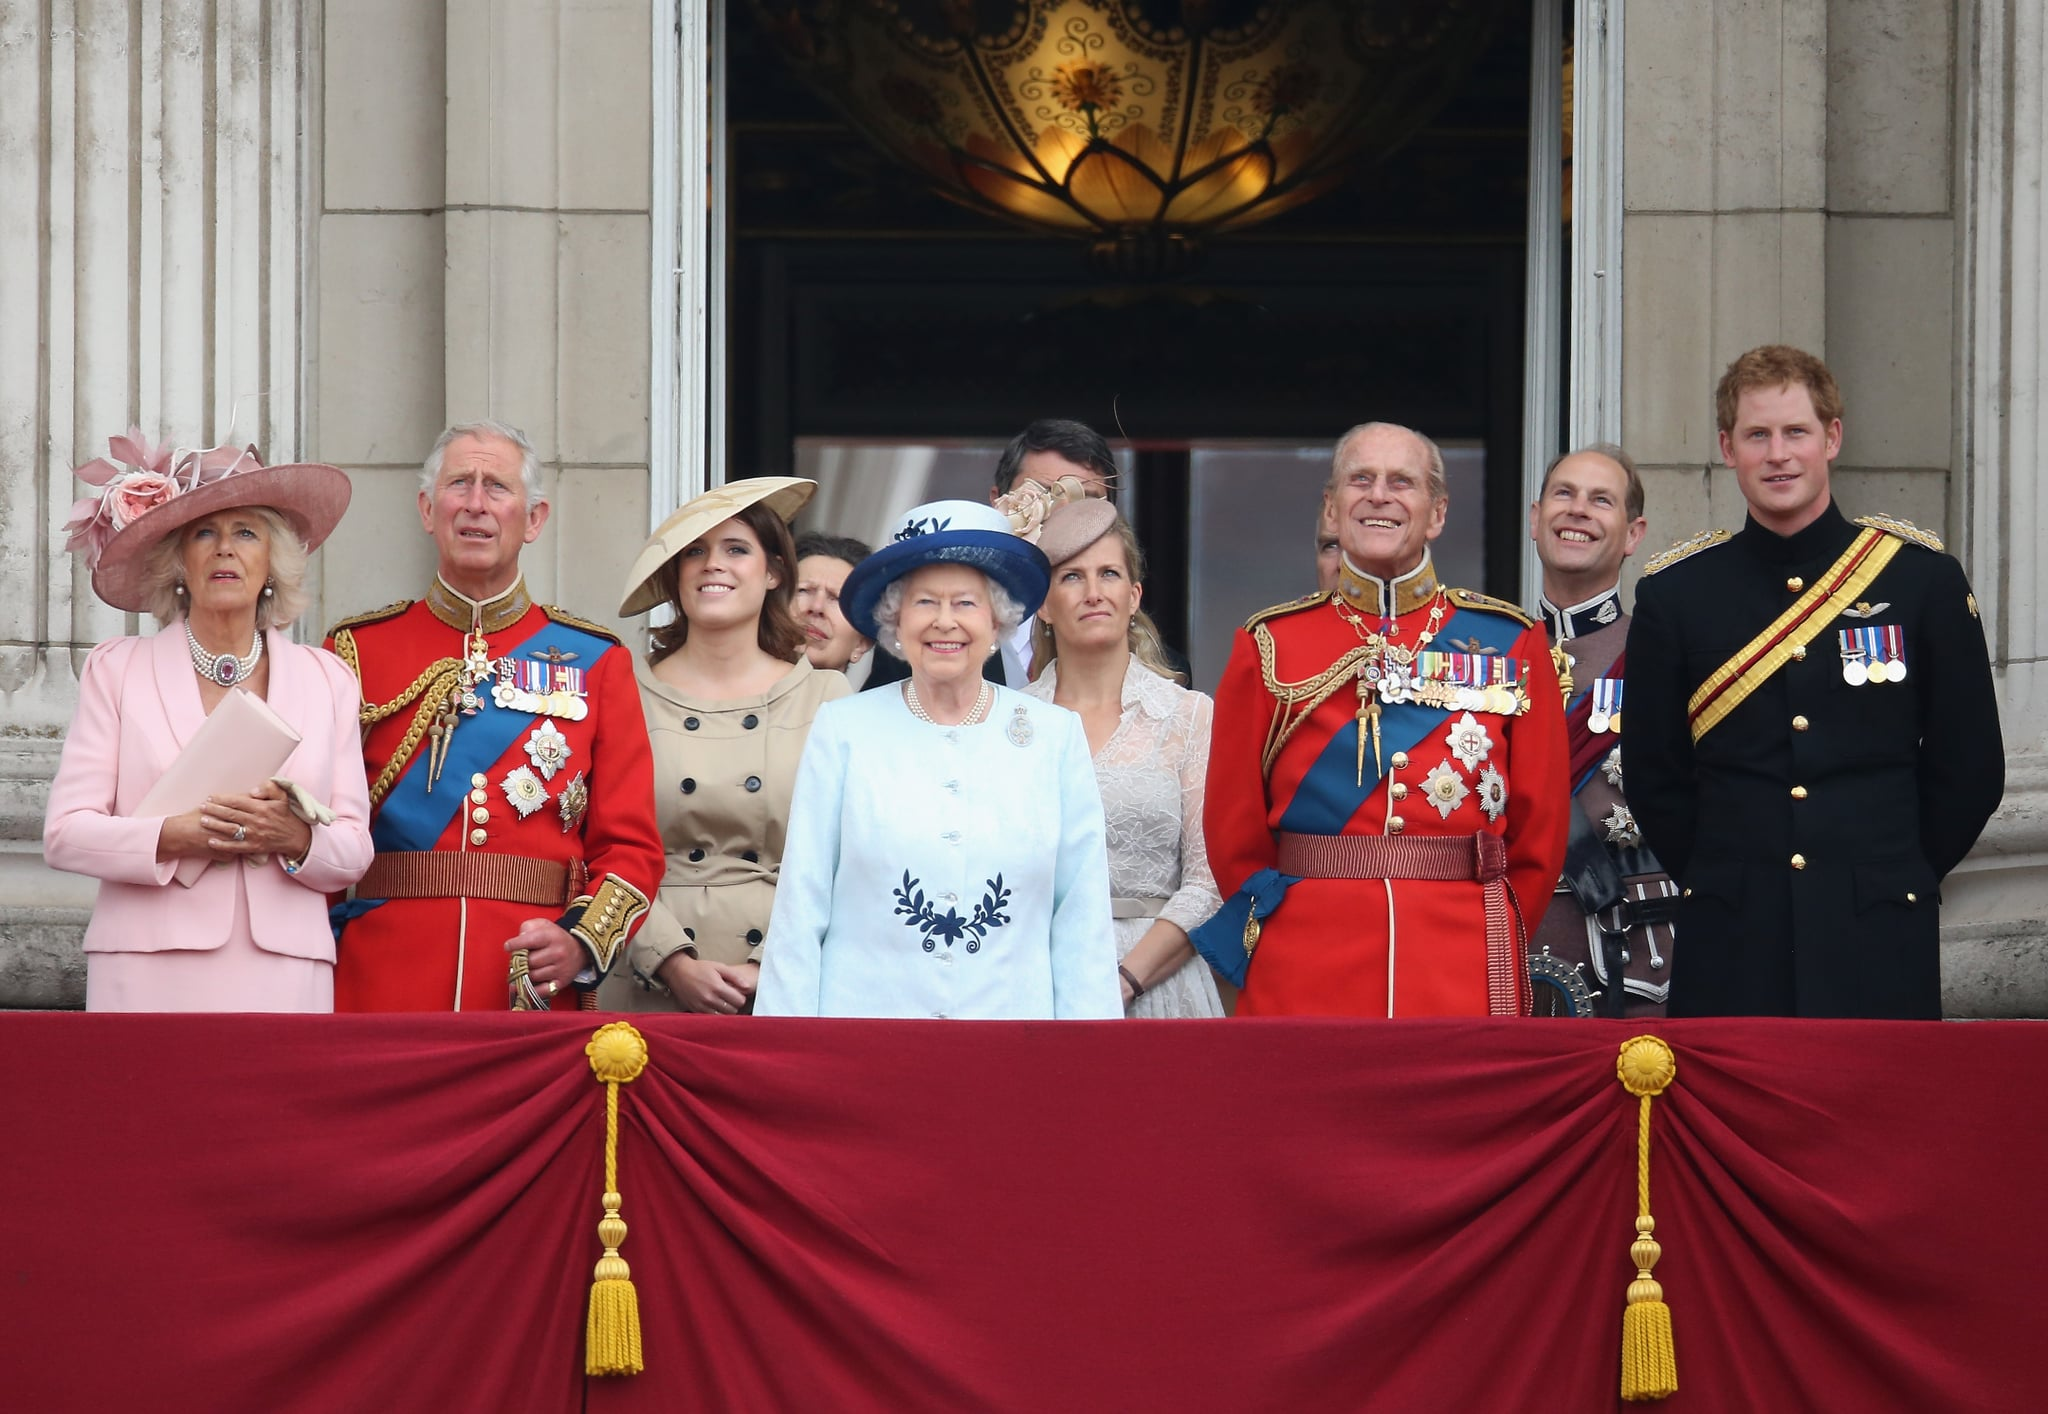 LONDON, ENGLAND - JUNE 14:  (L-R) Camilla, Duchess of Cornwall, Prince Charles, Prince of Wales, Princess Eugenie, Queen Elizabeth II, Sophie, Countess of Wessex, Prince Philip, Duke of Edinburgh, Prince Edward, Earl of Wessex and Prince Harry look on from the balcony during Trooping the Colour - Queen Elizabeth II's Birthday Parade, at The Royal Horseguards on June 14, 2014 in London, England.  (Photo by Chris Jackson/Getty Images)